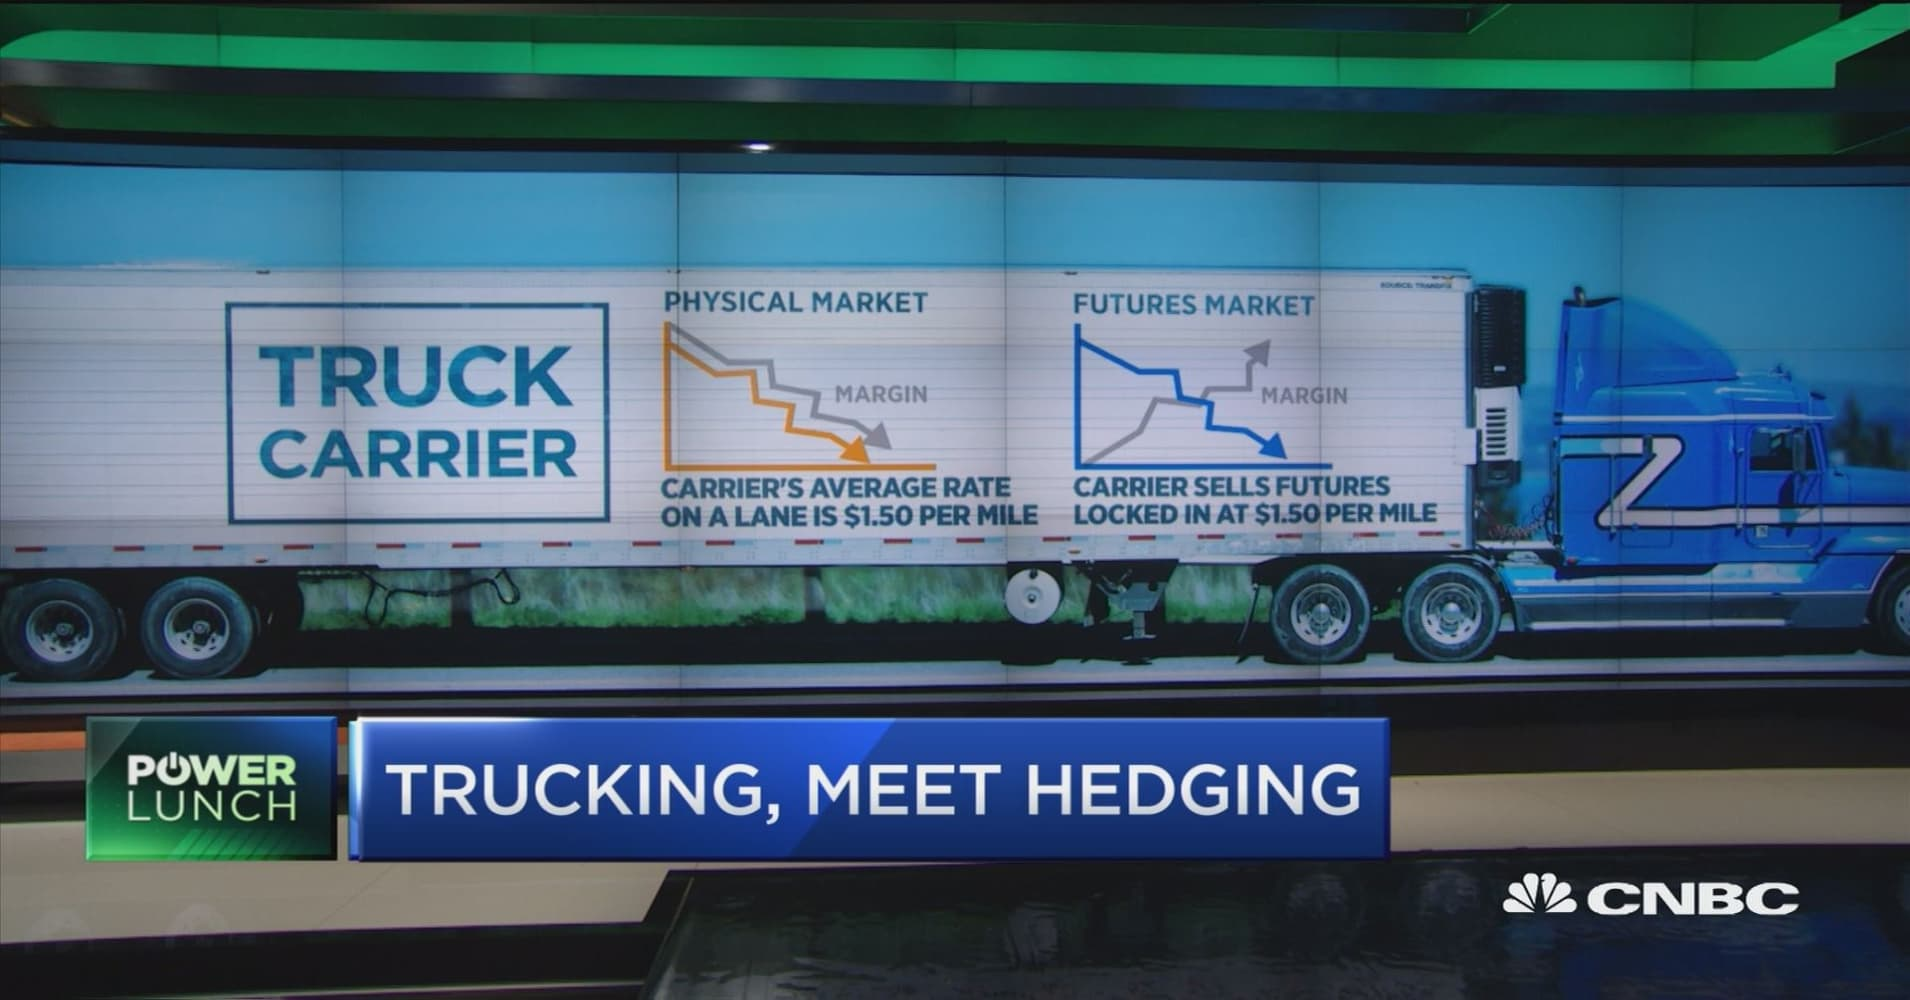 Trucking meets hedging